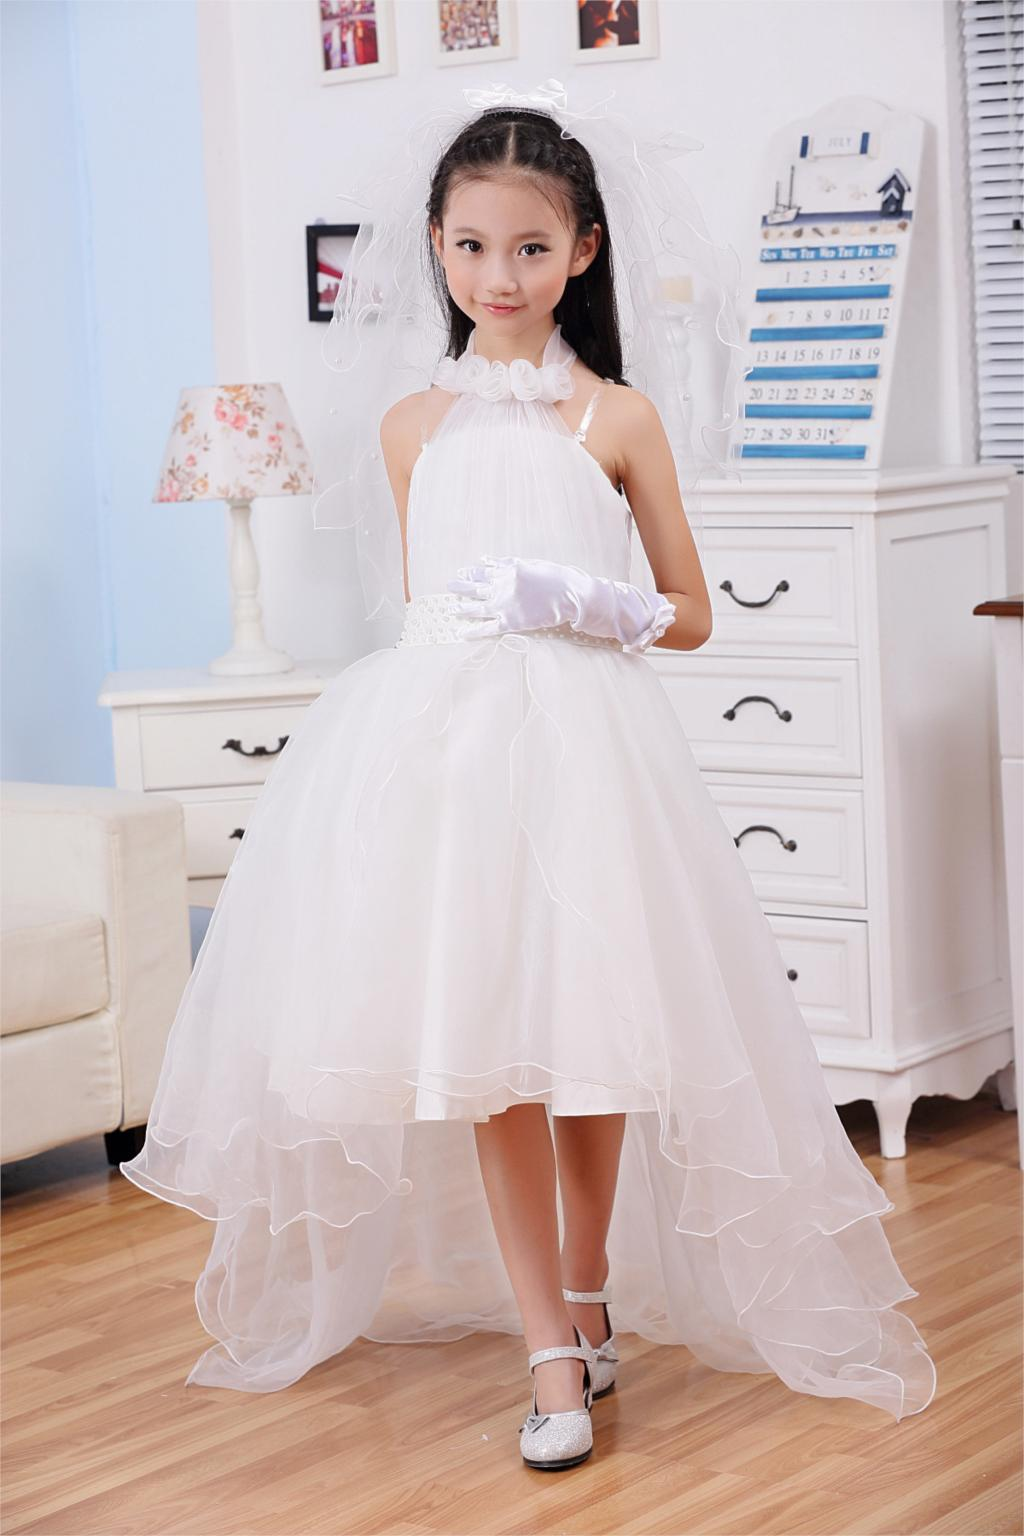 Next online party dresses - Aliexpress Com Buy Princess Formal Dresses Fancy Dresses For Girls White Long Evening Dress For 3 4 5 6 7 8 9 10 11 12 13 14 Years Old Kd 14257 From